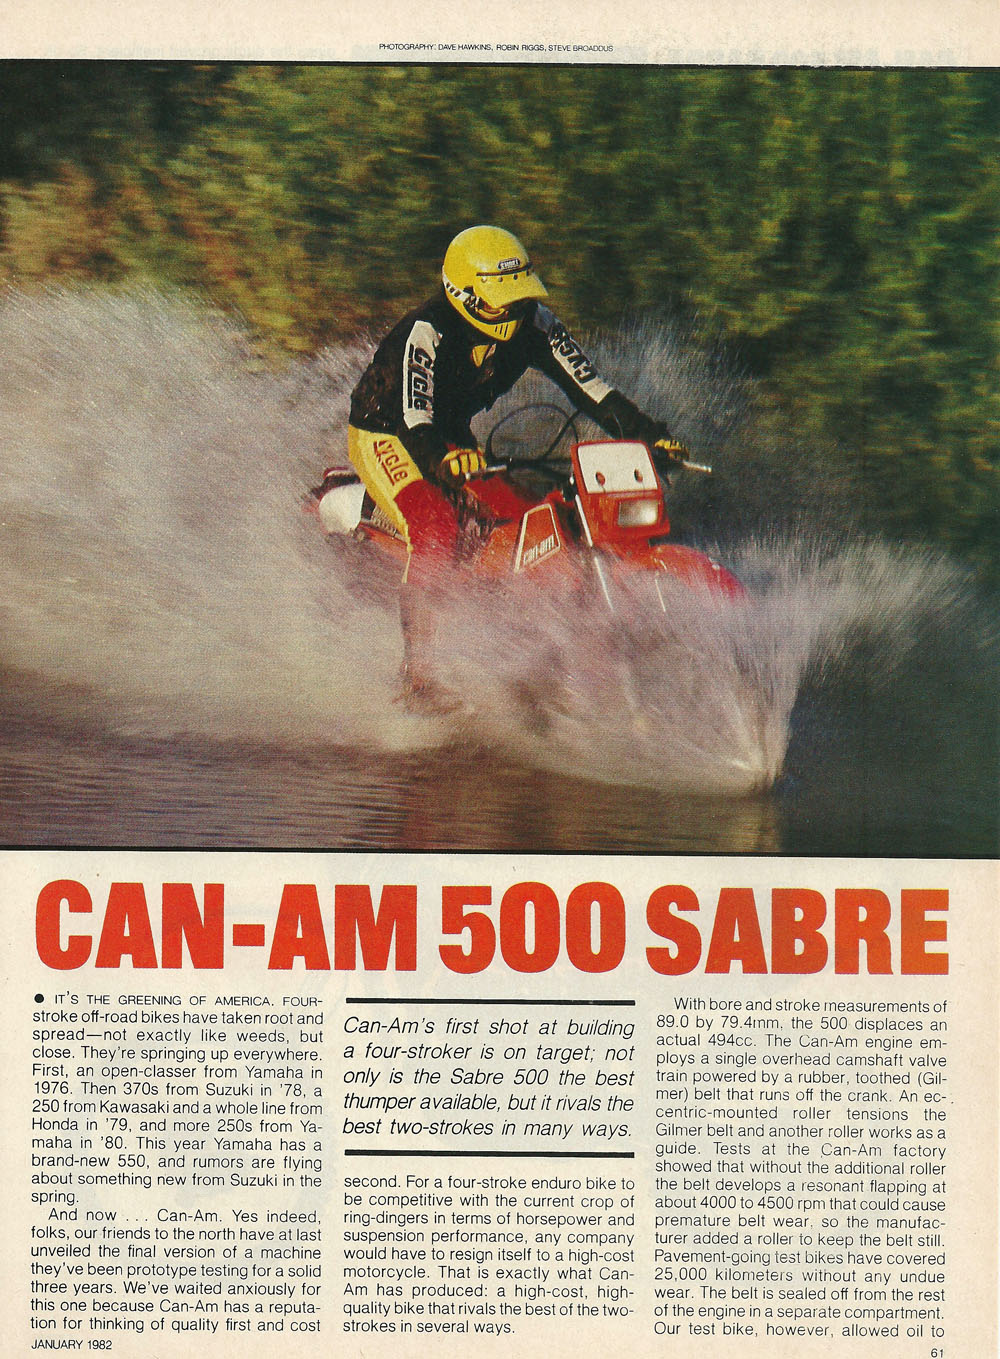 1982 Can-am 500 Sabre road test 01.jpg